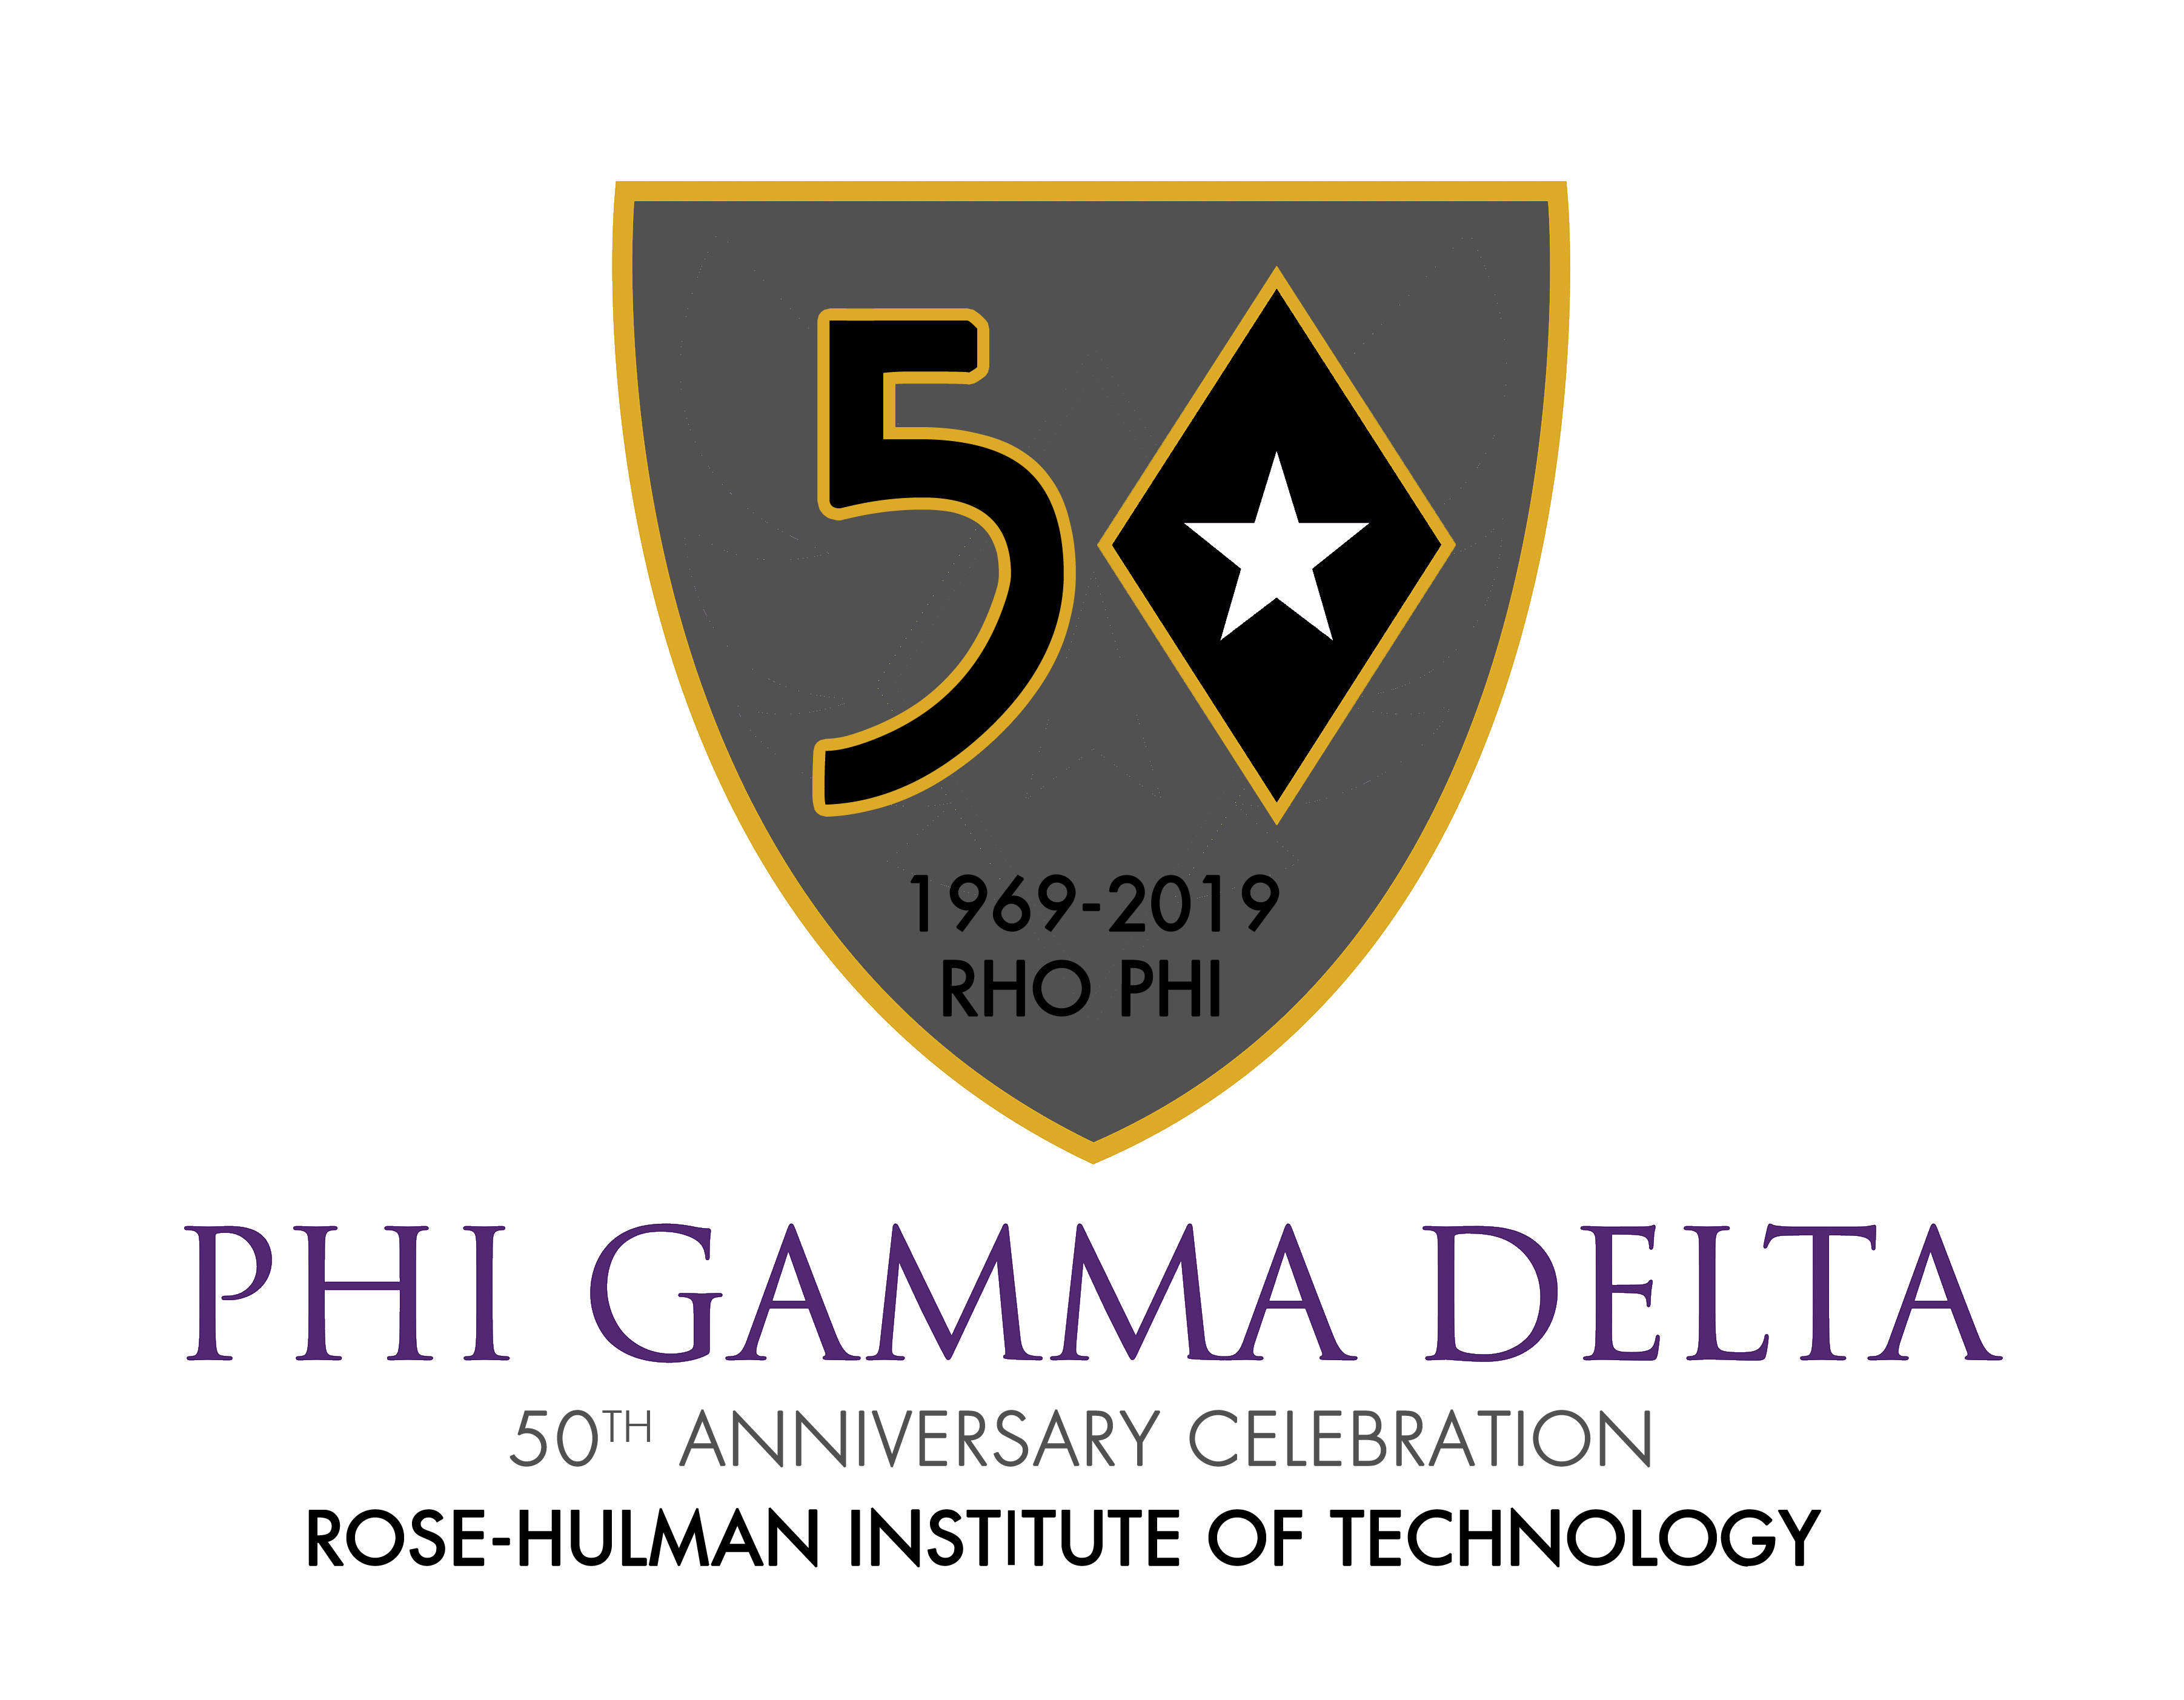 00-Collection - Rho Phi 50th Anniversary Event